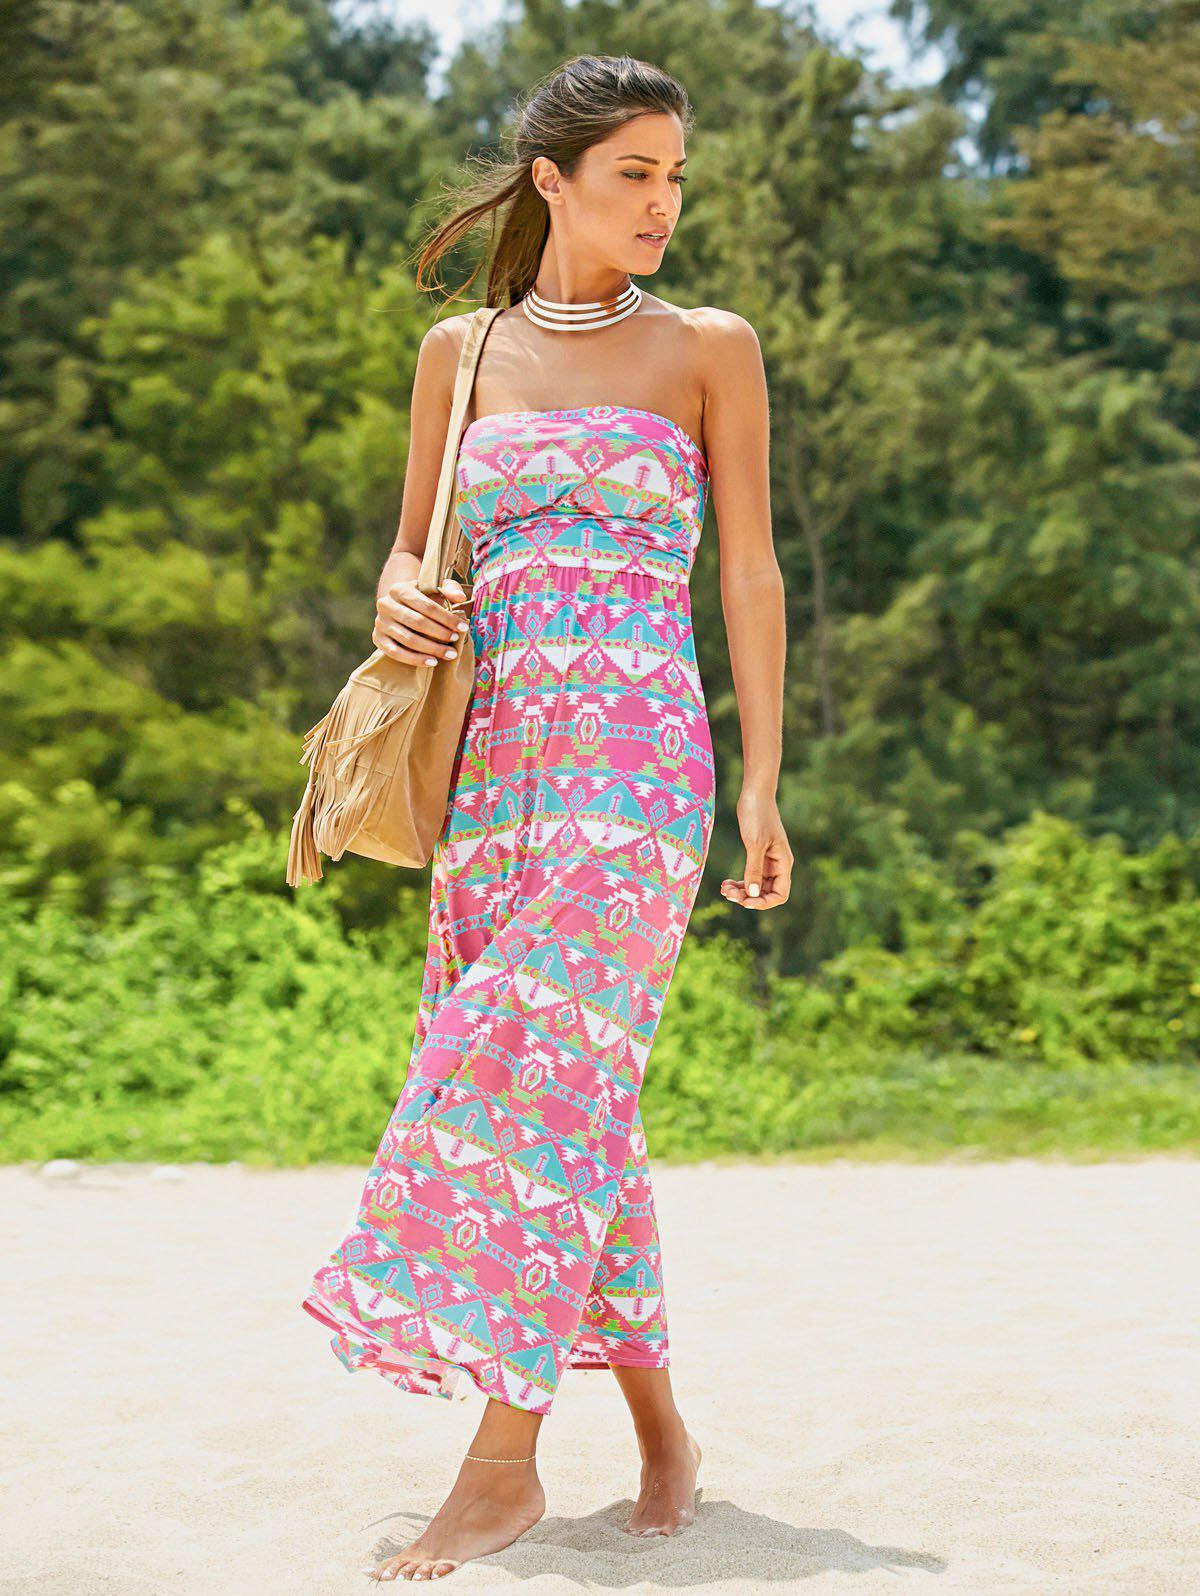 Trendy Strapless Colorful Print Dress For Women - COLORMIX XL